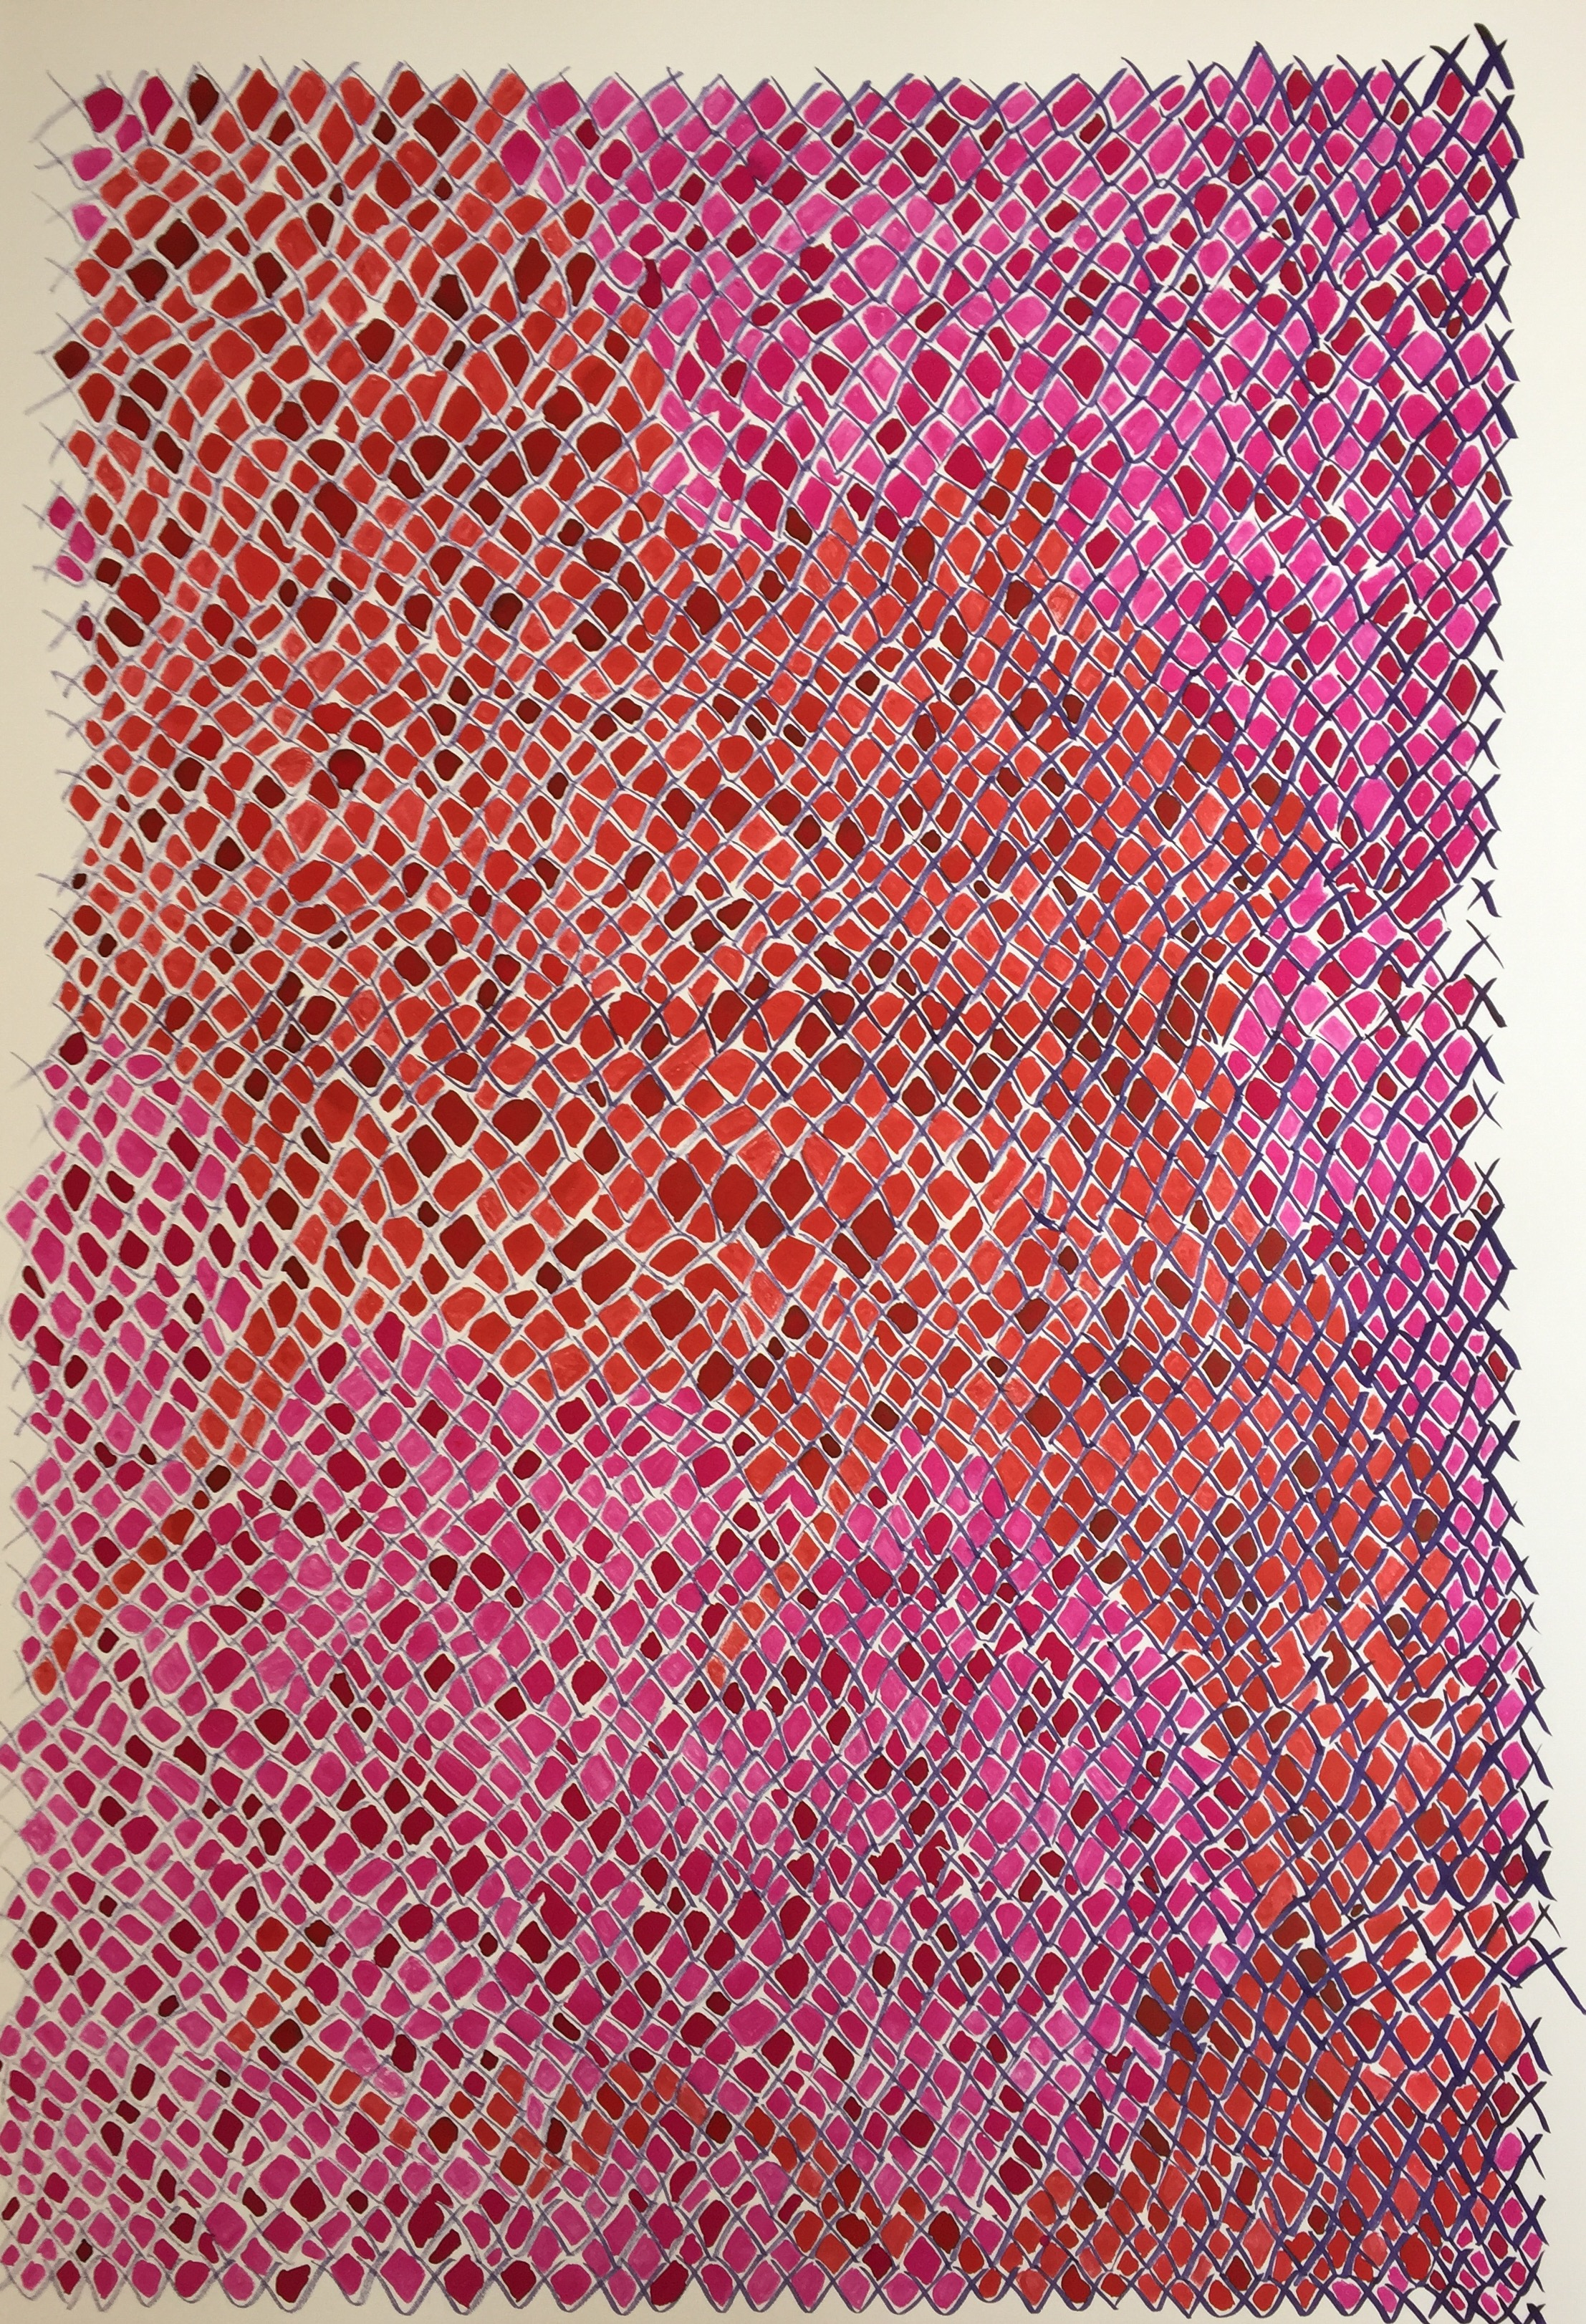 "Untitled, fiber reactive dye on paper, 25""x38"", 2016."